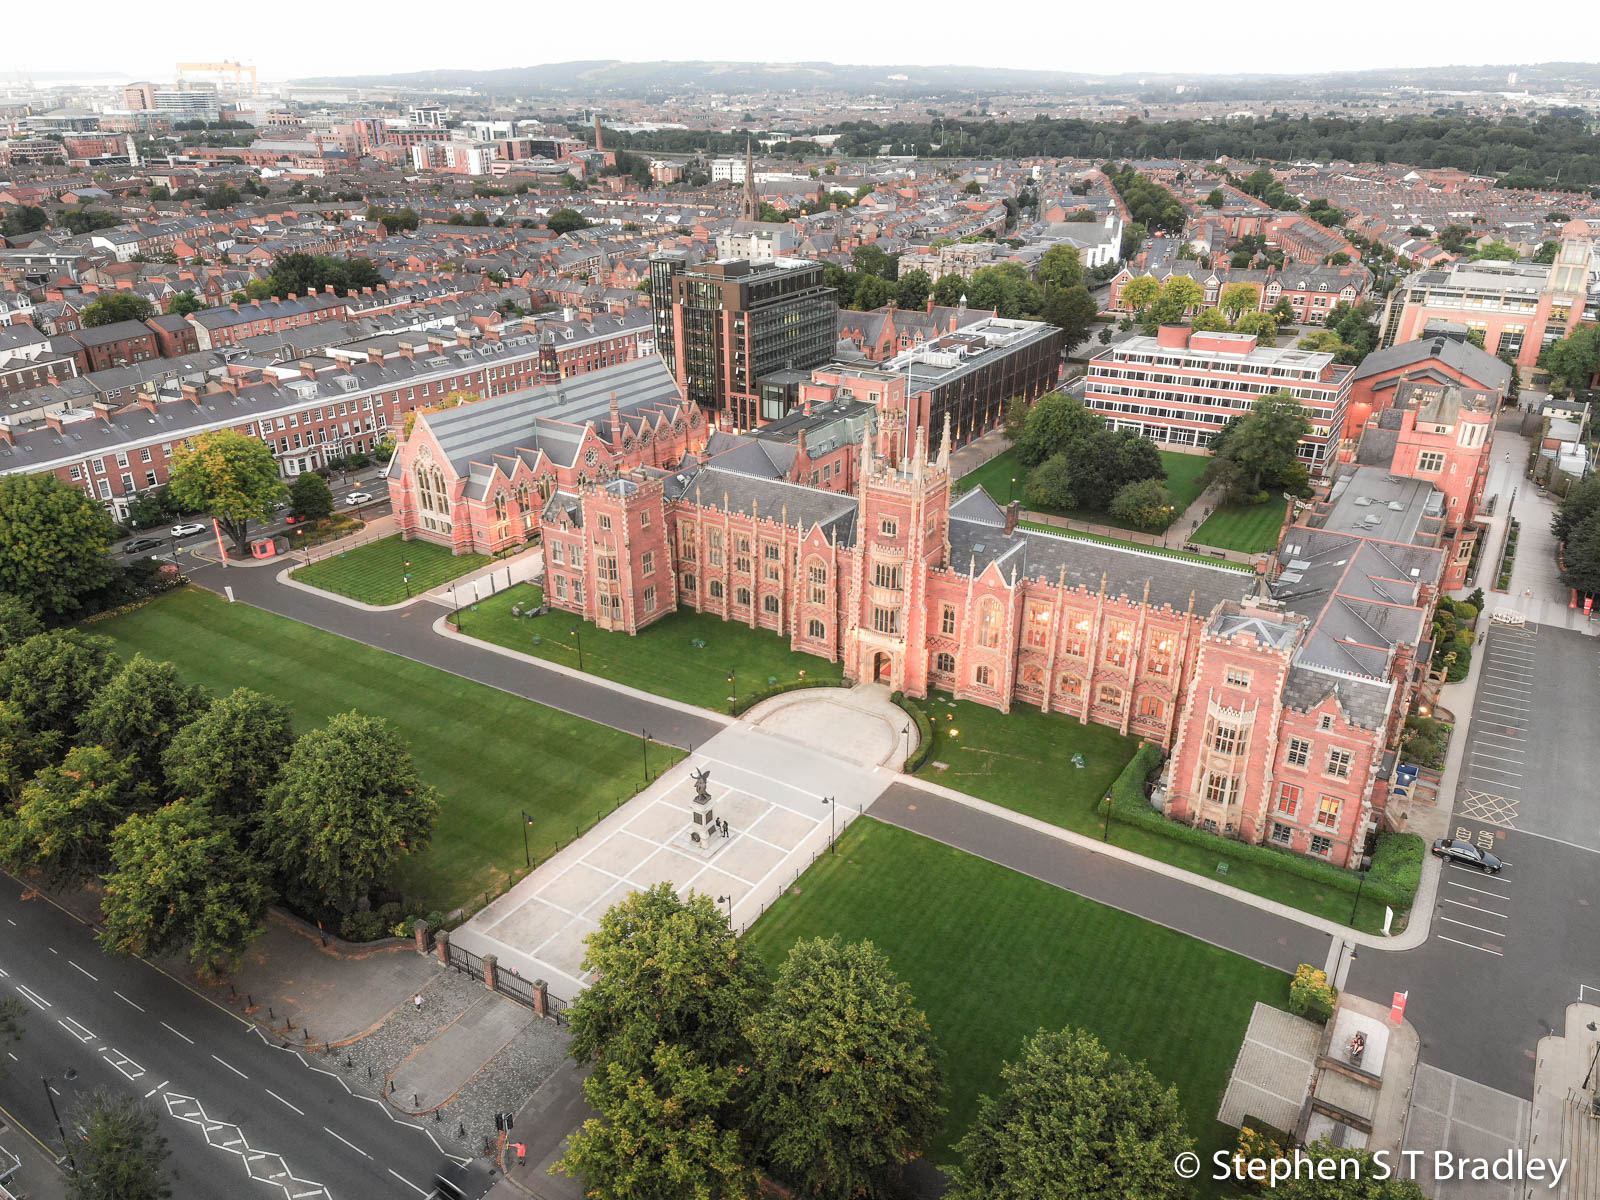 Aerial photograph of Queens University Belfast by Stephen S T Bradley - aerial drone photographer and video production services in Dublin and throughout Ireland. Photo reference 0142